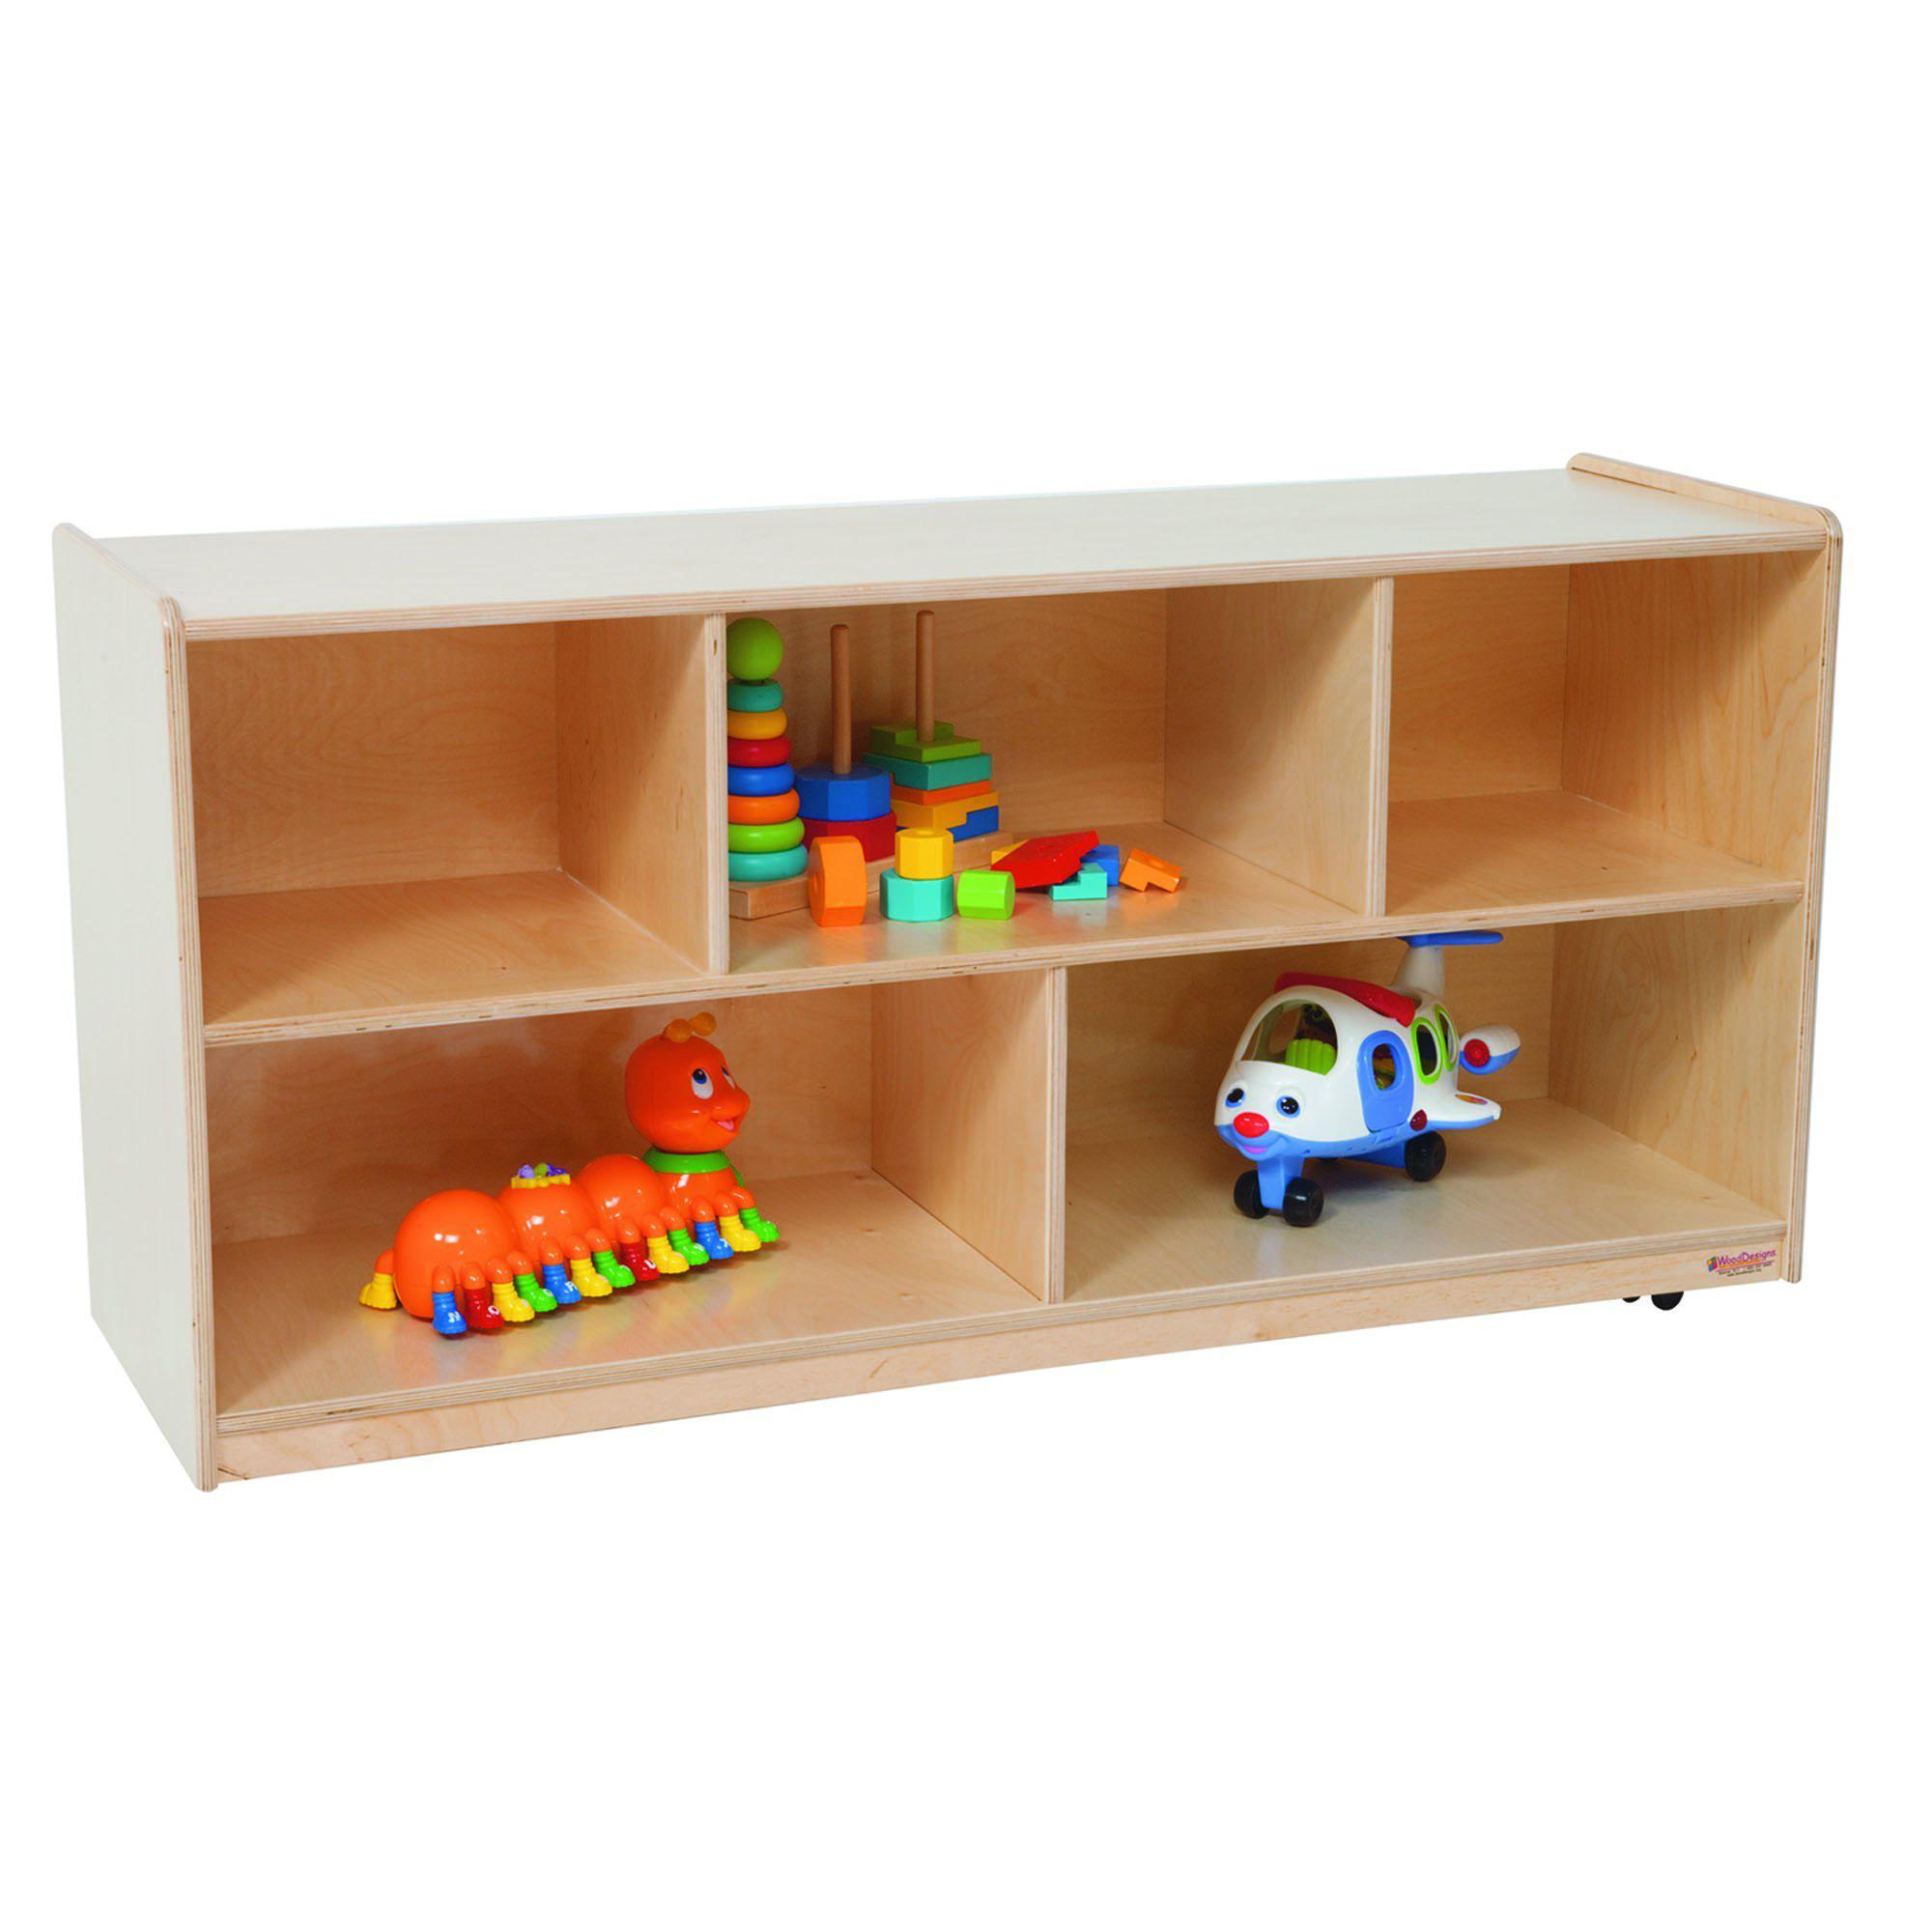 "Wood Designs Single Storage, 23-1/2""H"